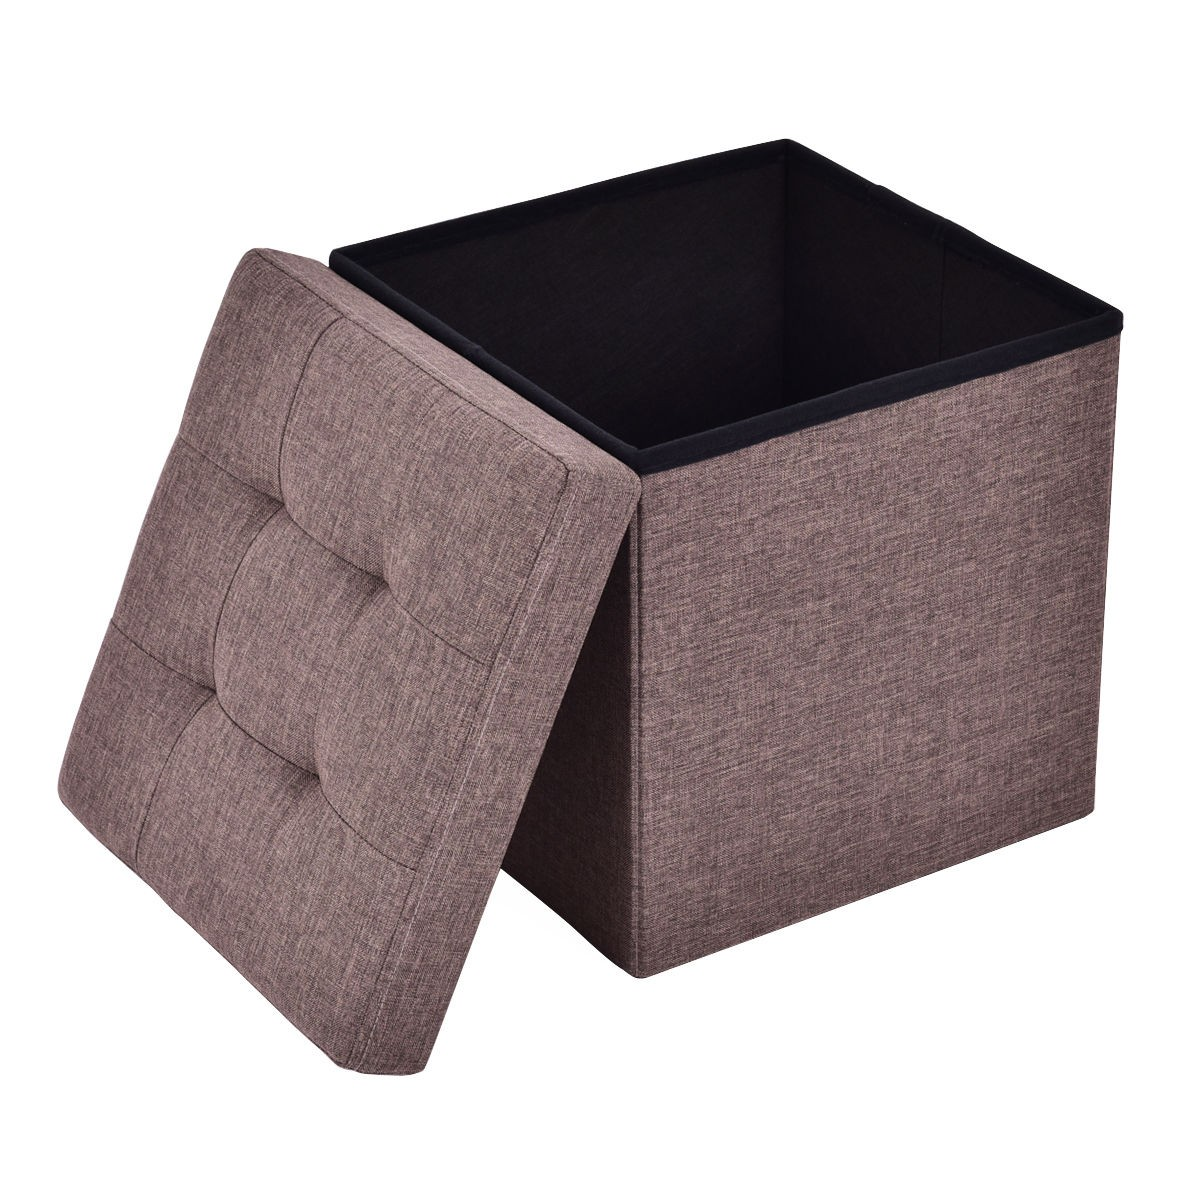 Stools and Ottomans | Leather Storage Cube Ottoman | Storage Cube Ottoman